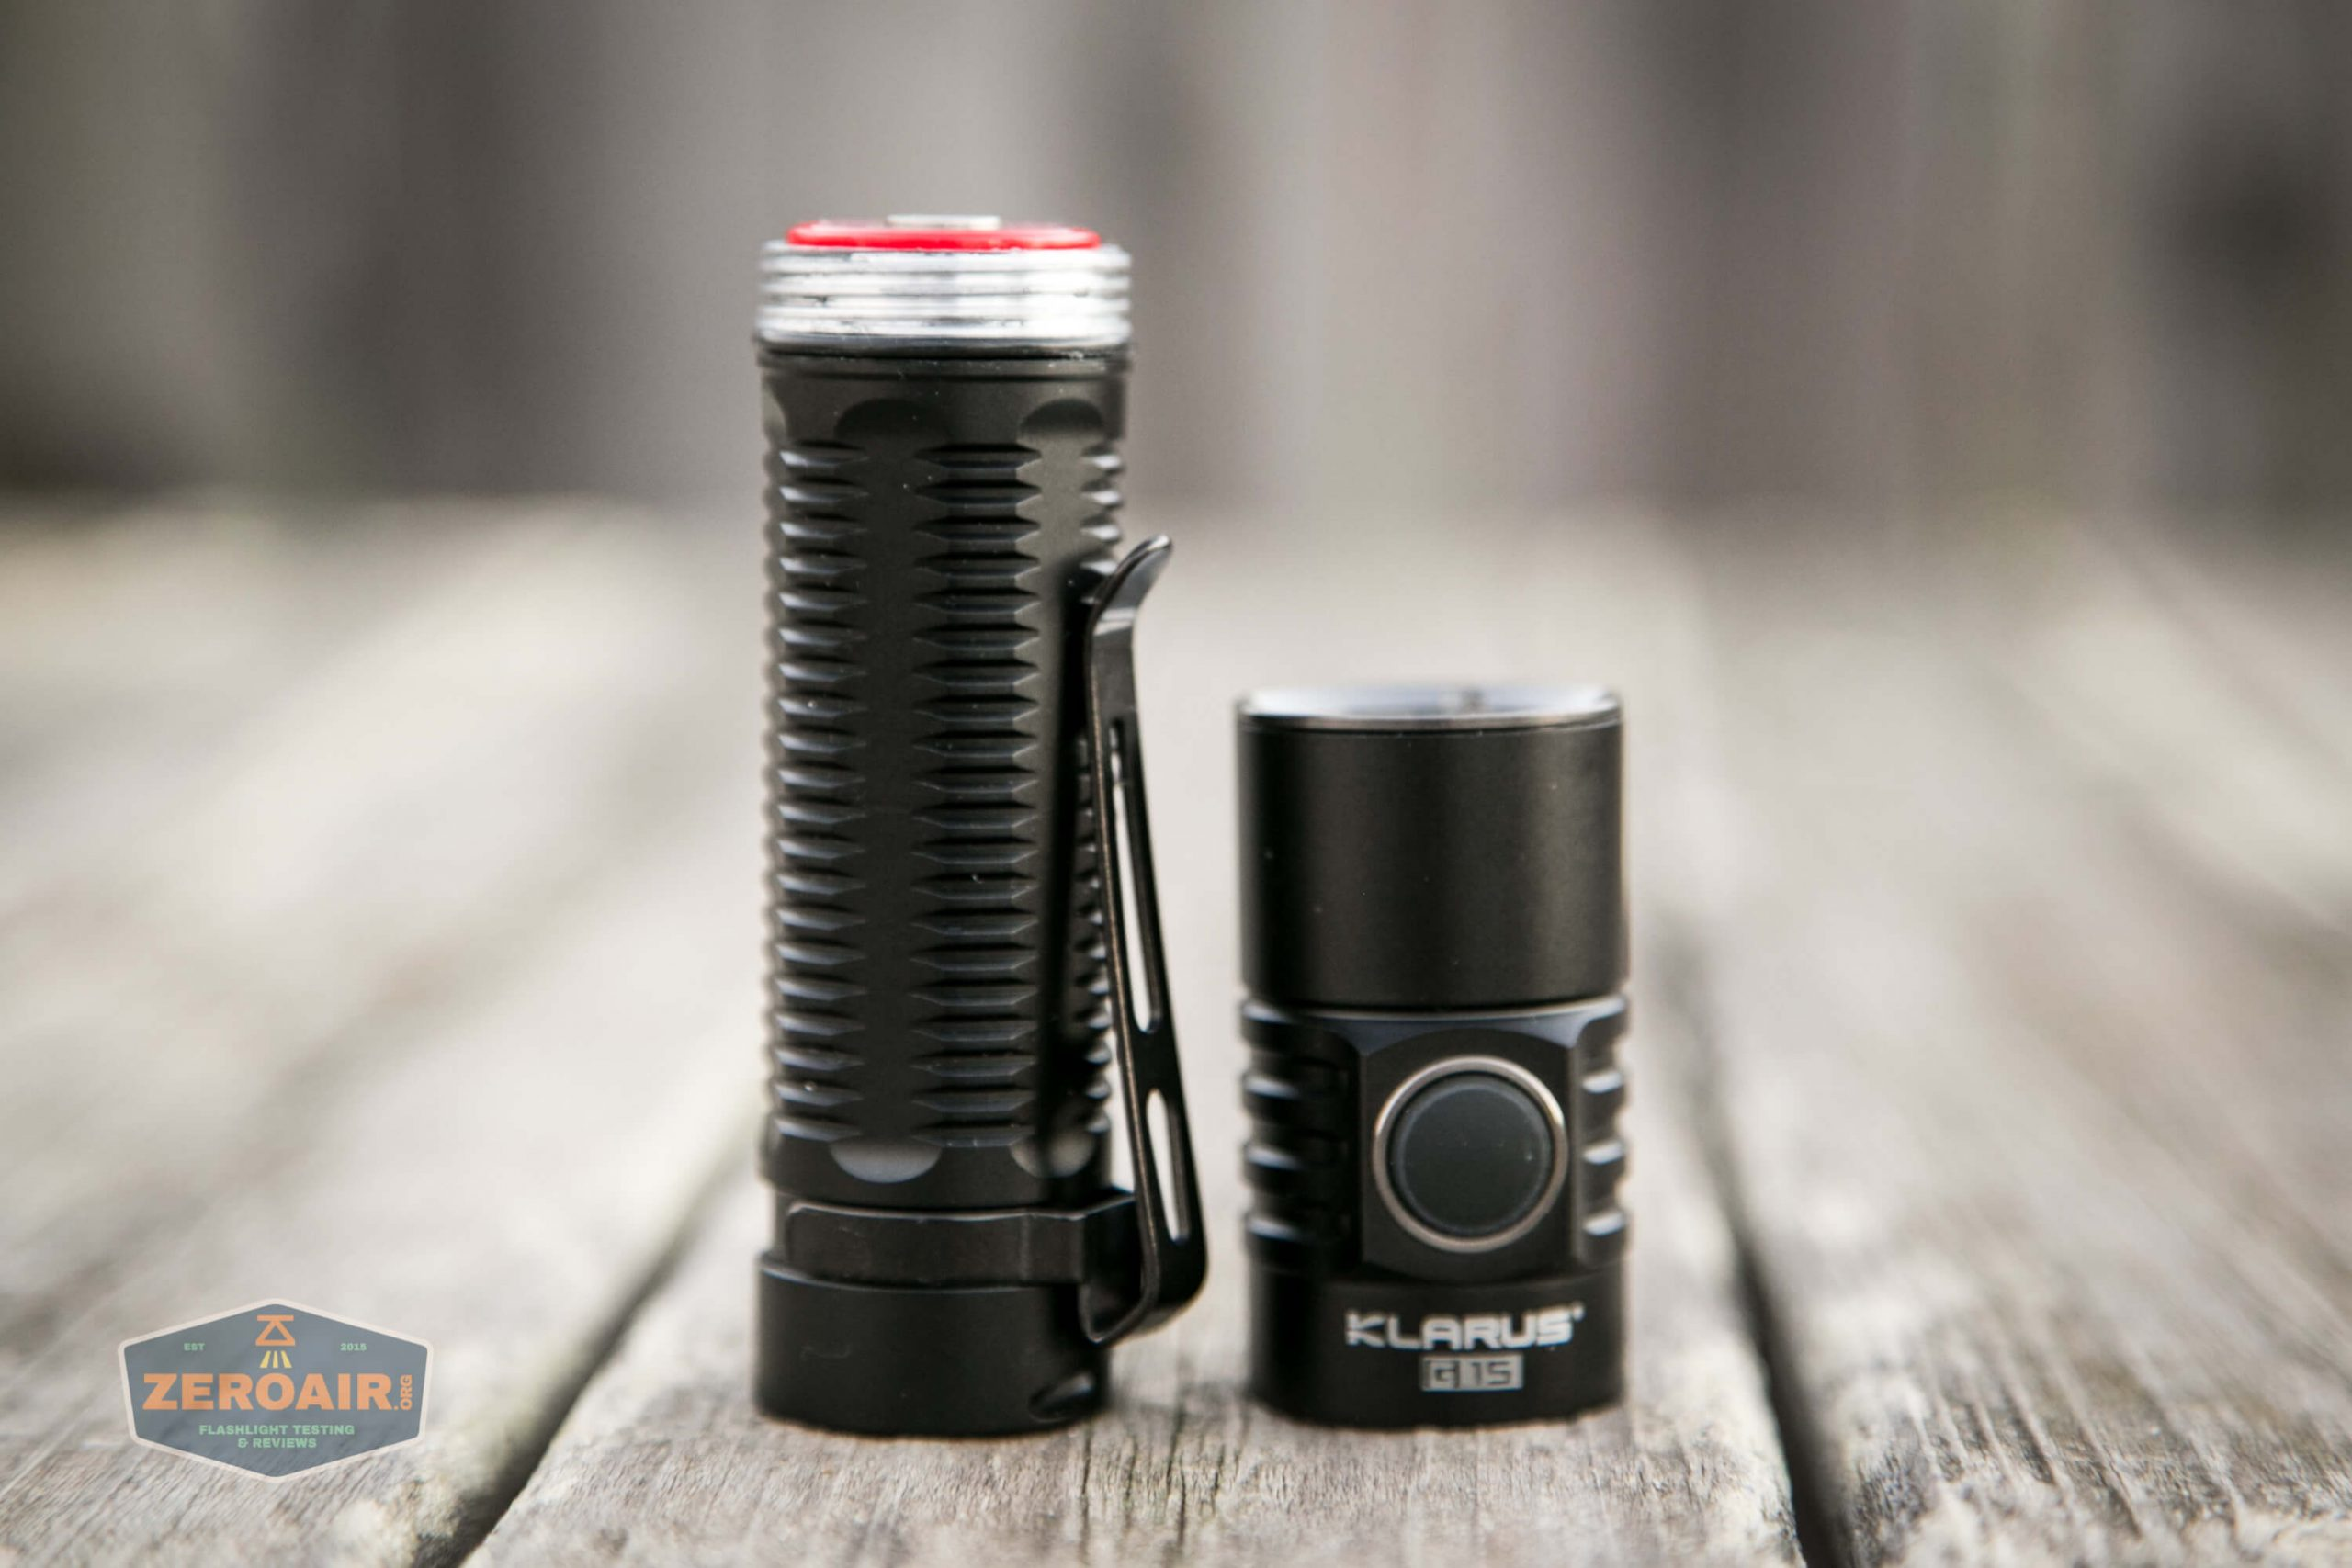 klarus g25 21700 cree xhp70.2 flashlight with cell installed